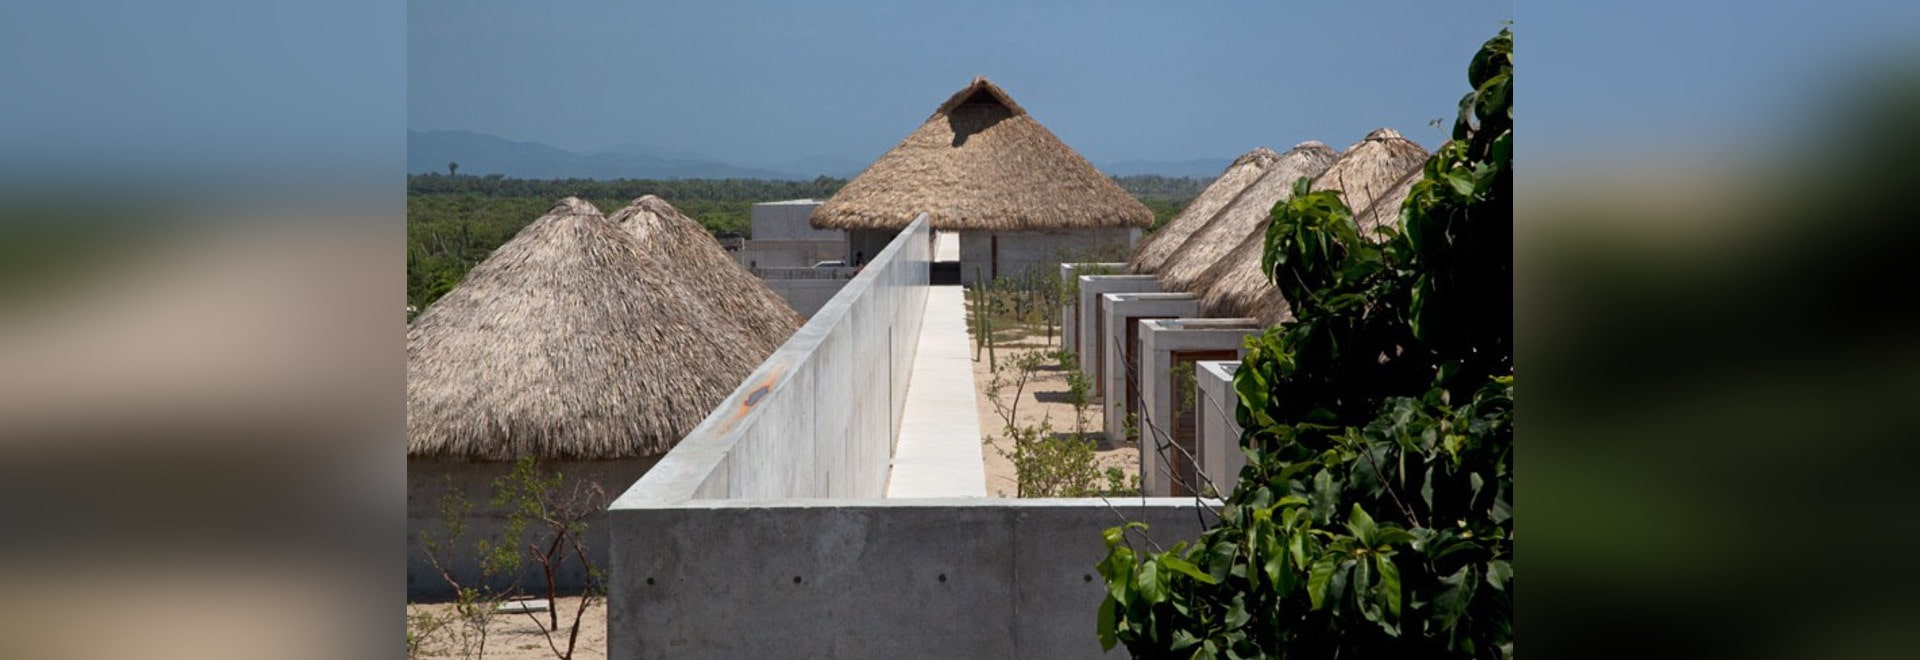 thatched roofs sit atop concrete huts